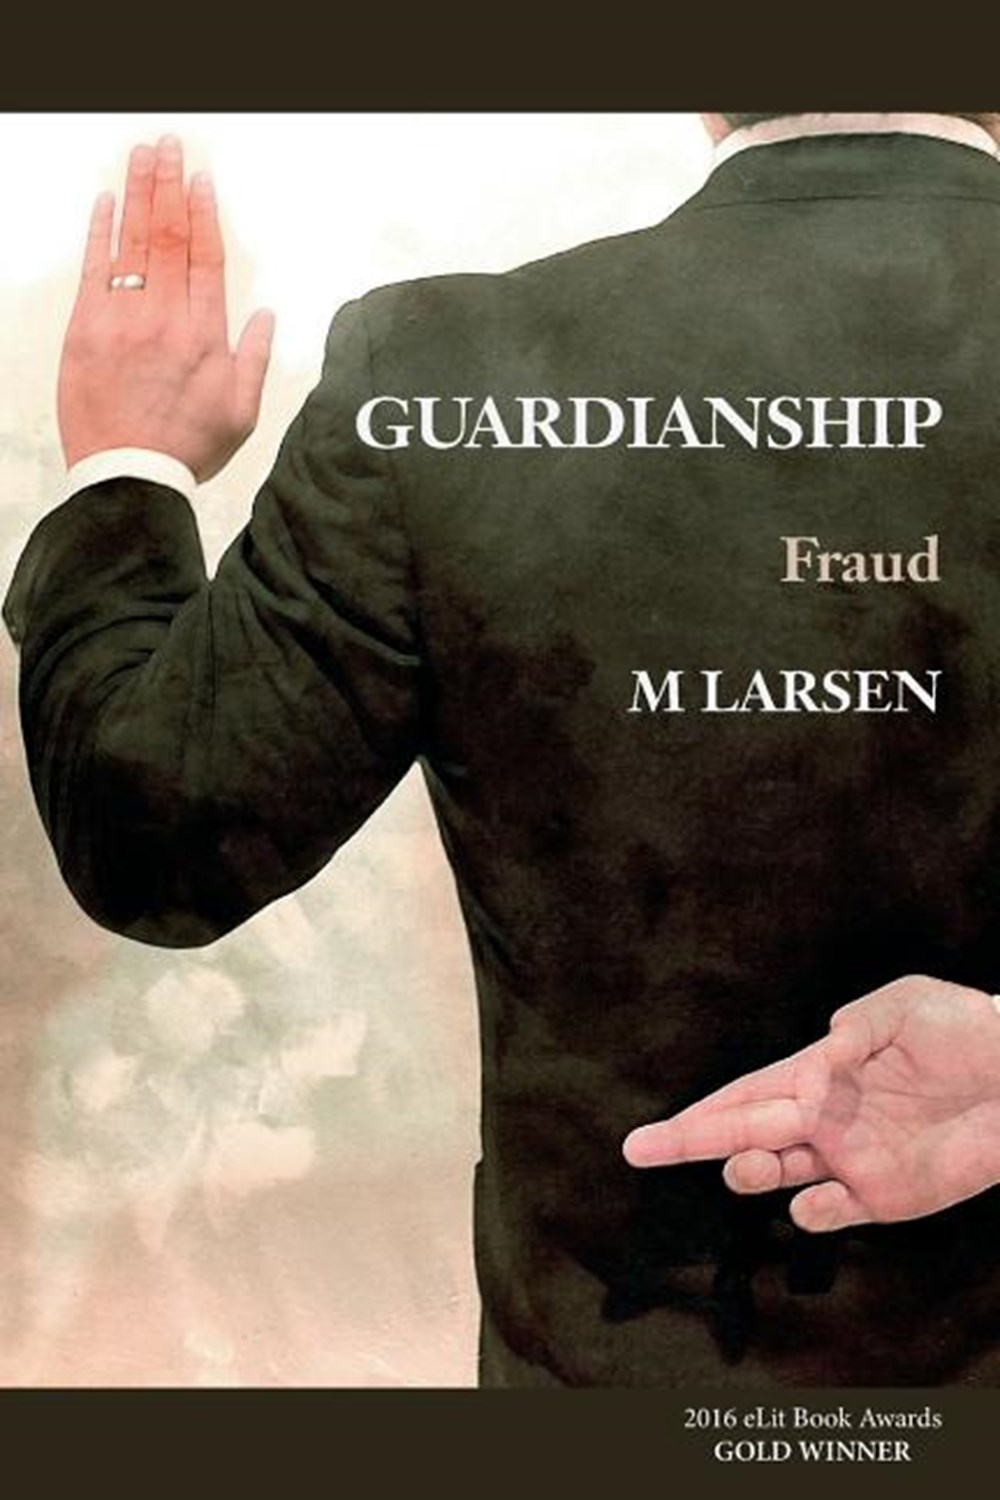 Guardianship Fraud